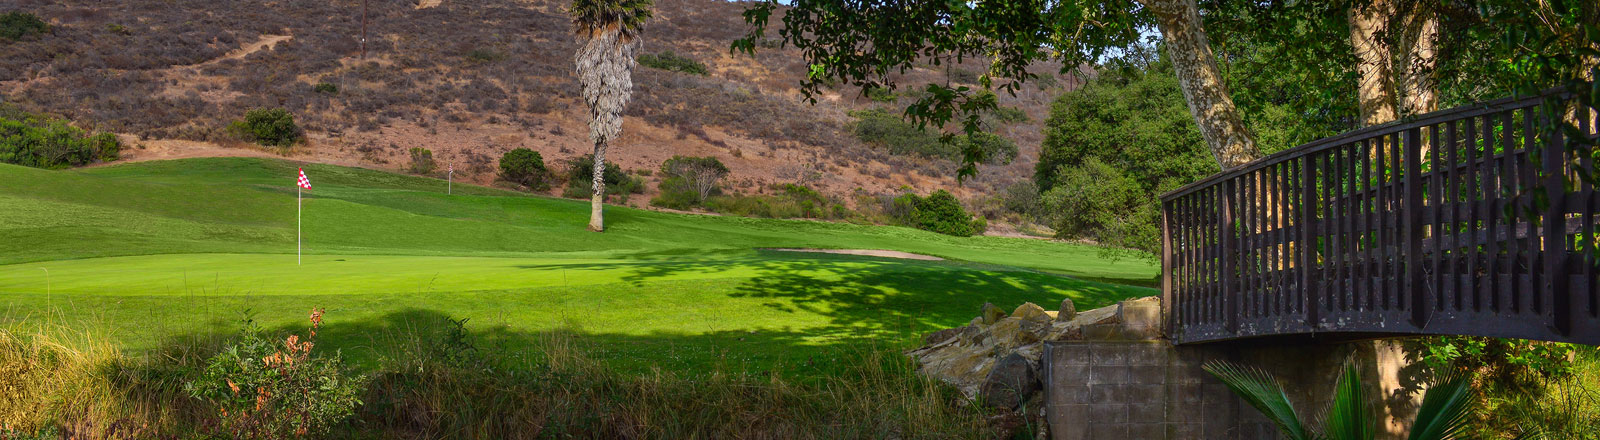 Tecolote Canyon Golf Course Header